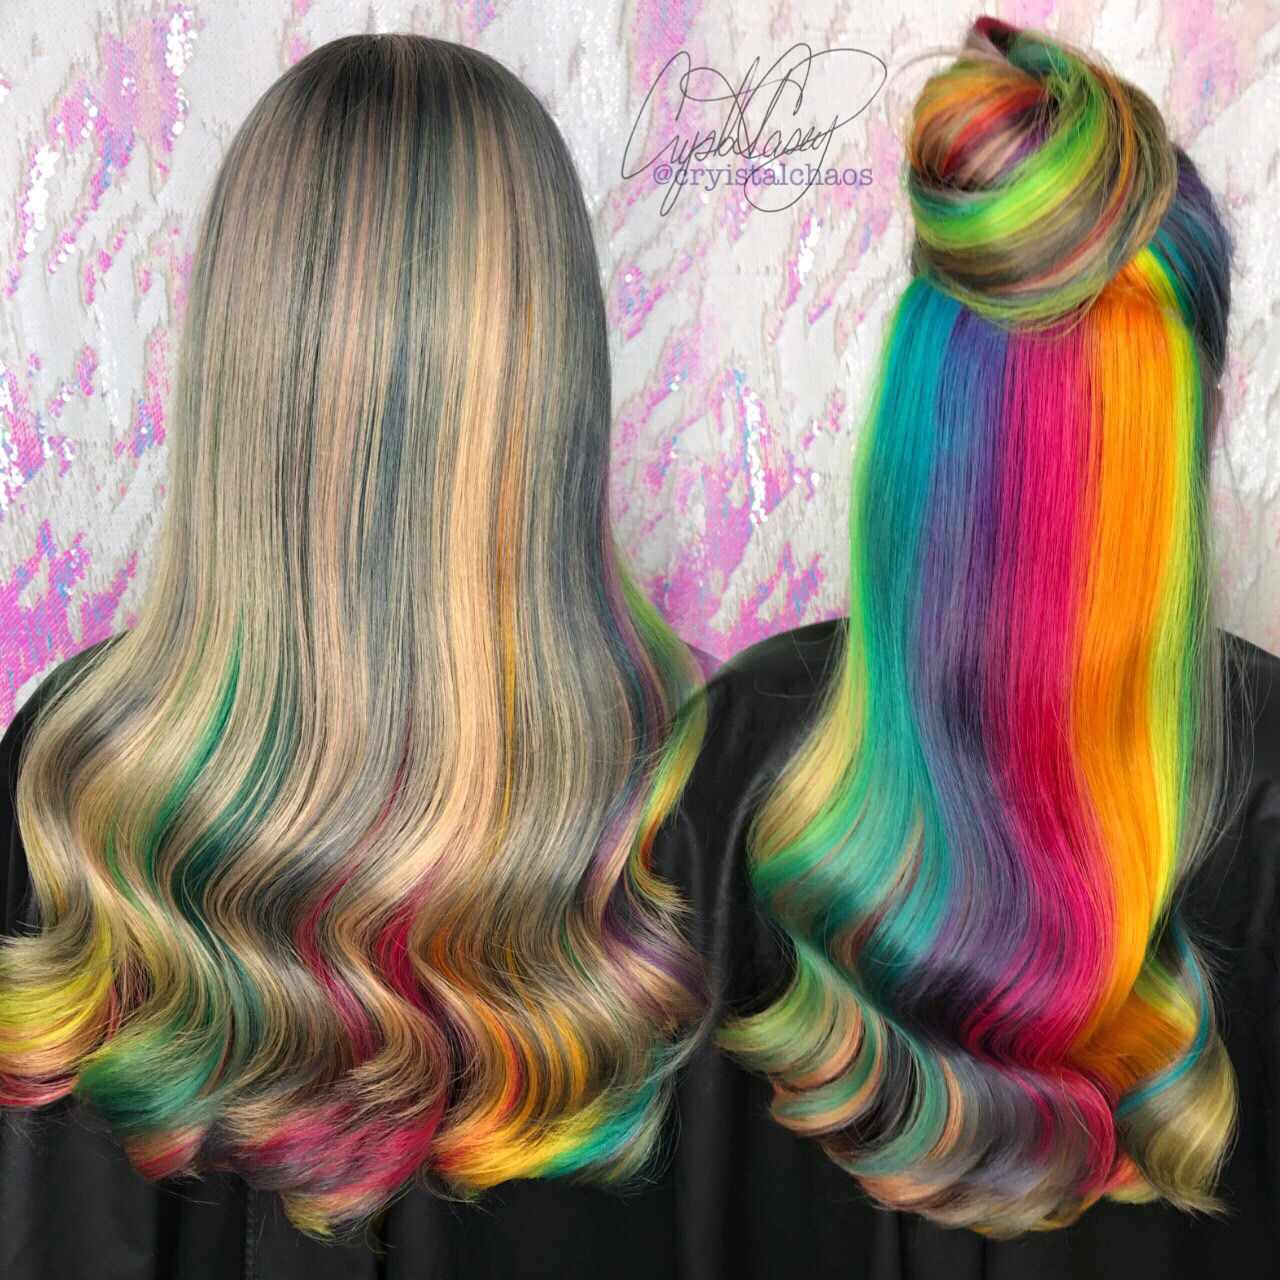 hidden rainbow hair instagram cryistalchaos